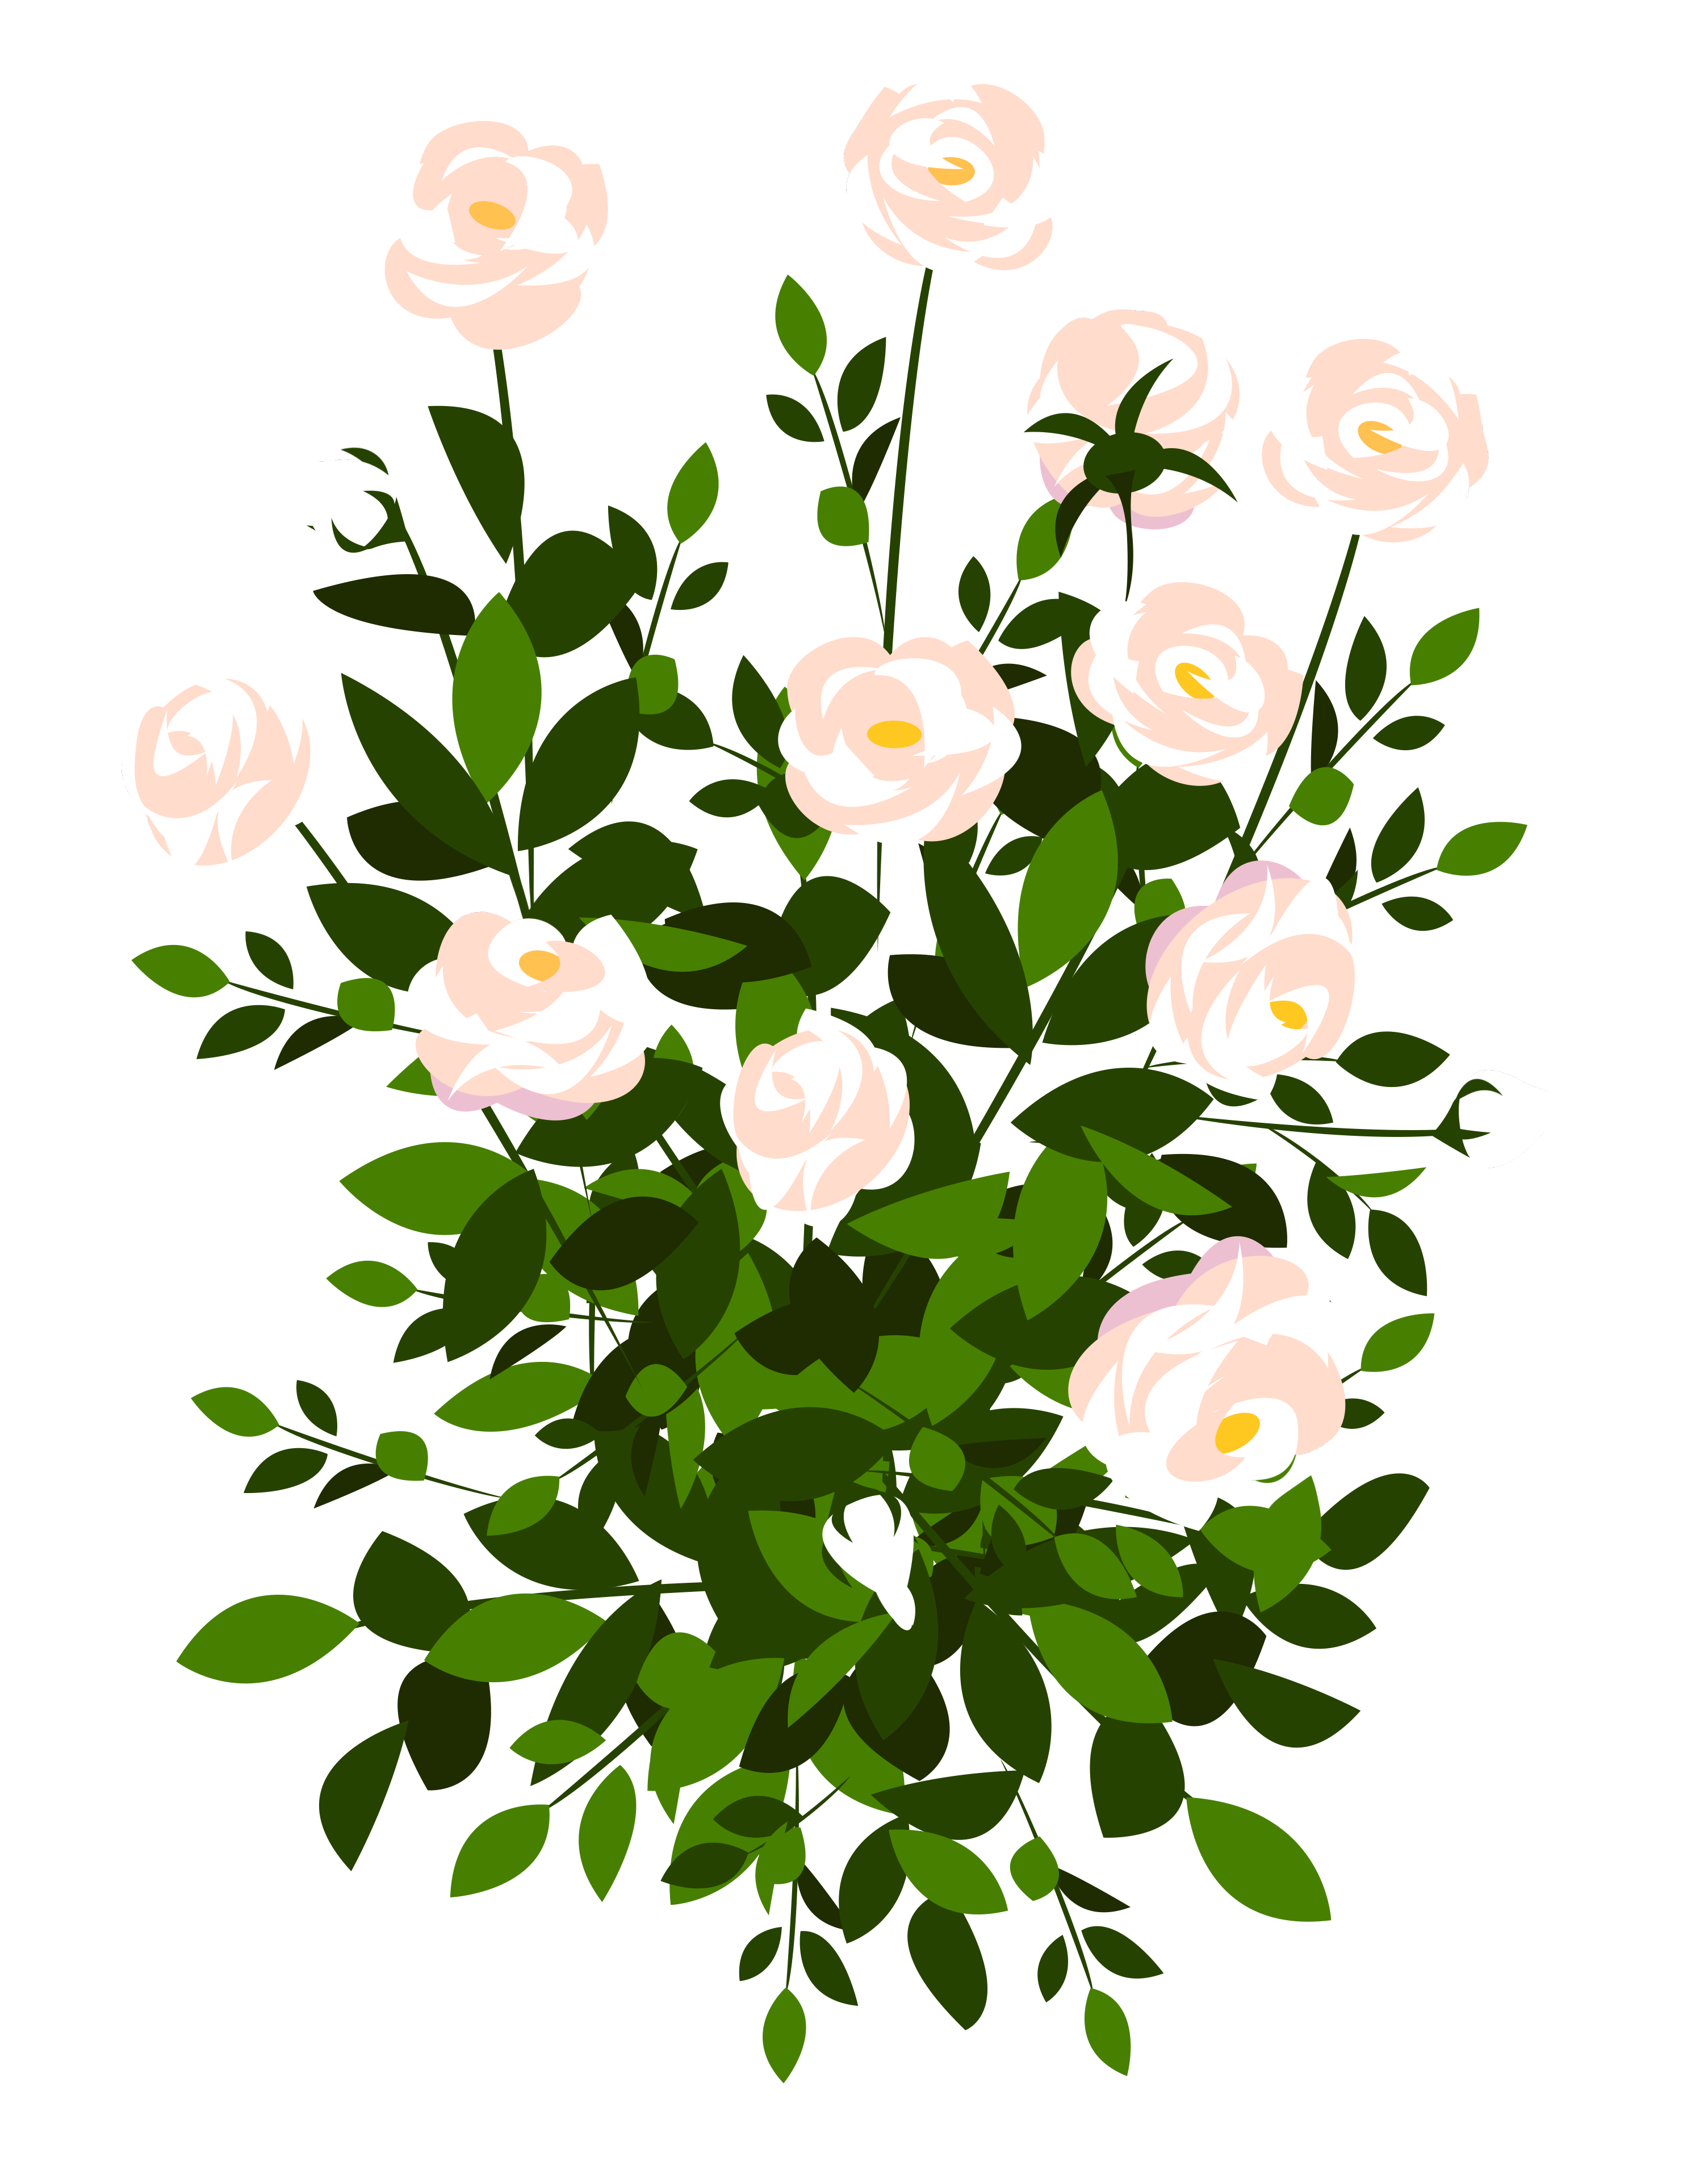 Flower bush clipart png library Whte Rose Bush PNG Clipart Picture   Gallery Yopriceville - High ... png library